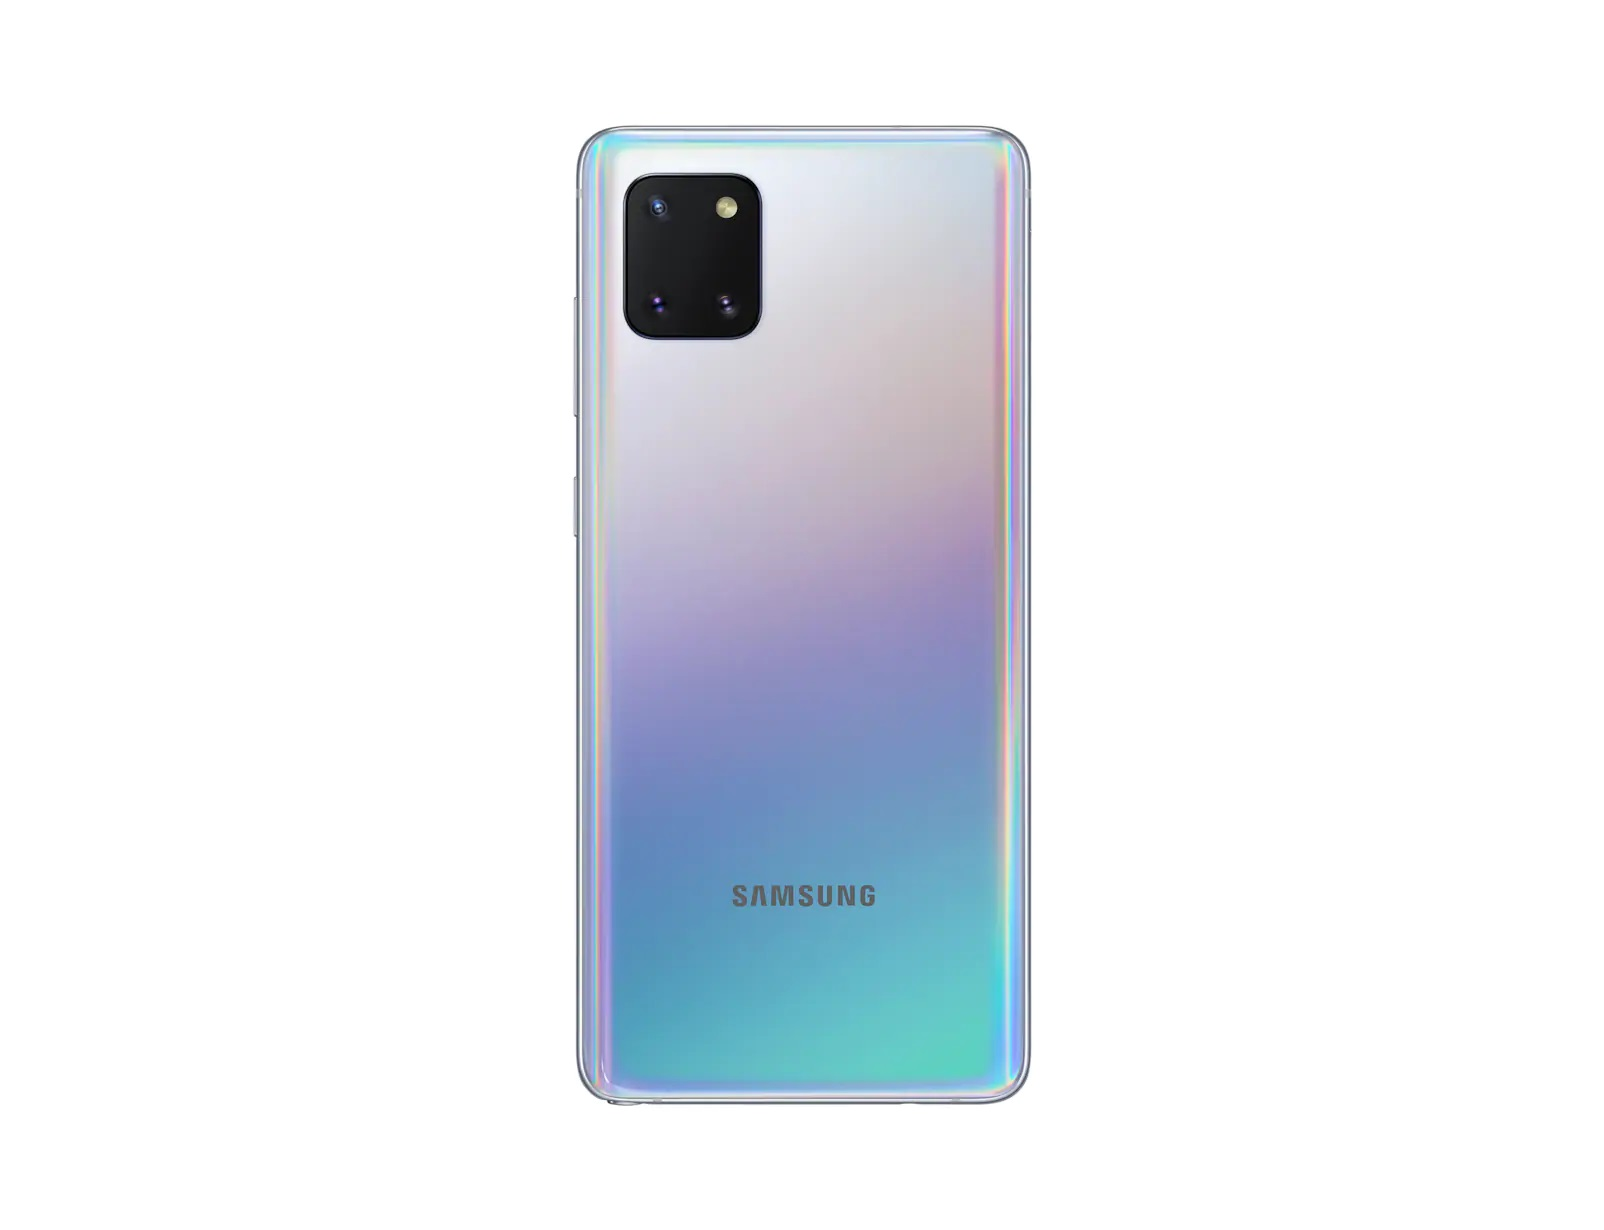 "Samsung Galaxy Note10 Lite EU 128GB Glow, DualSIM, 6.7"" 1080x2400 AMOLED, Exynos 9810, Octa-Core 2.7GHz, 8GB RAM, Mali-G72 MP18, microSD (dedicated slot), 12MP+12MP+12MP/32MP, USB-C, 4500mAh, FC, WiFi-AC/BT5.0, Android 10, NFC"